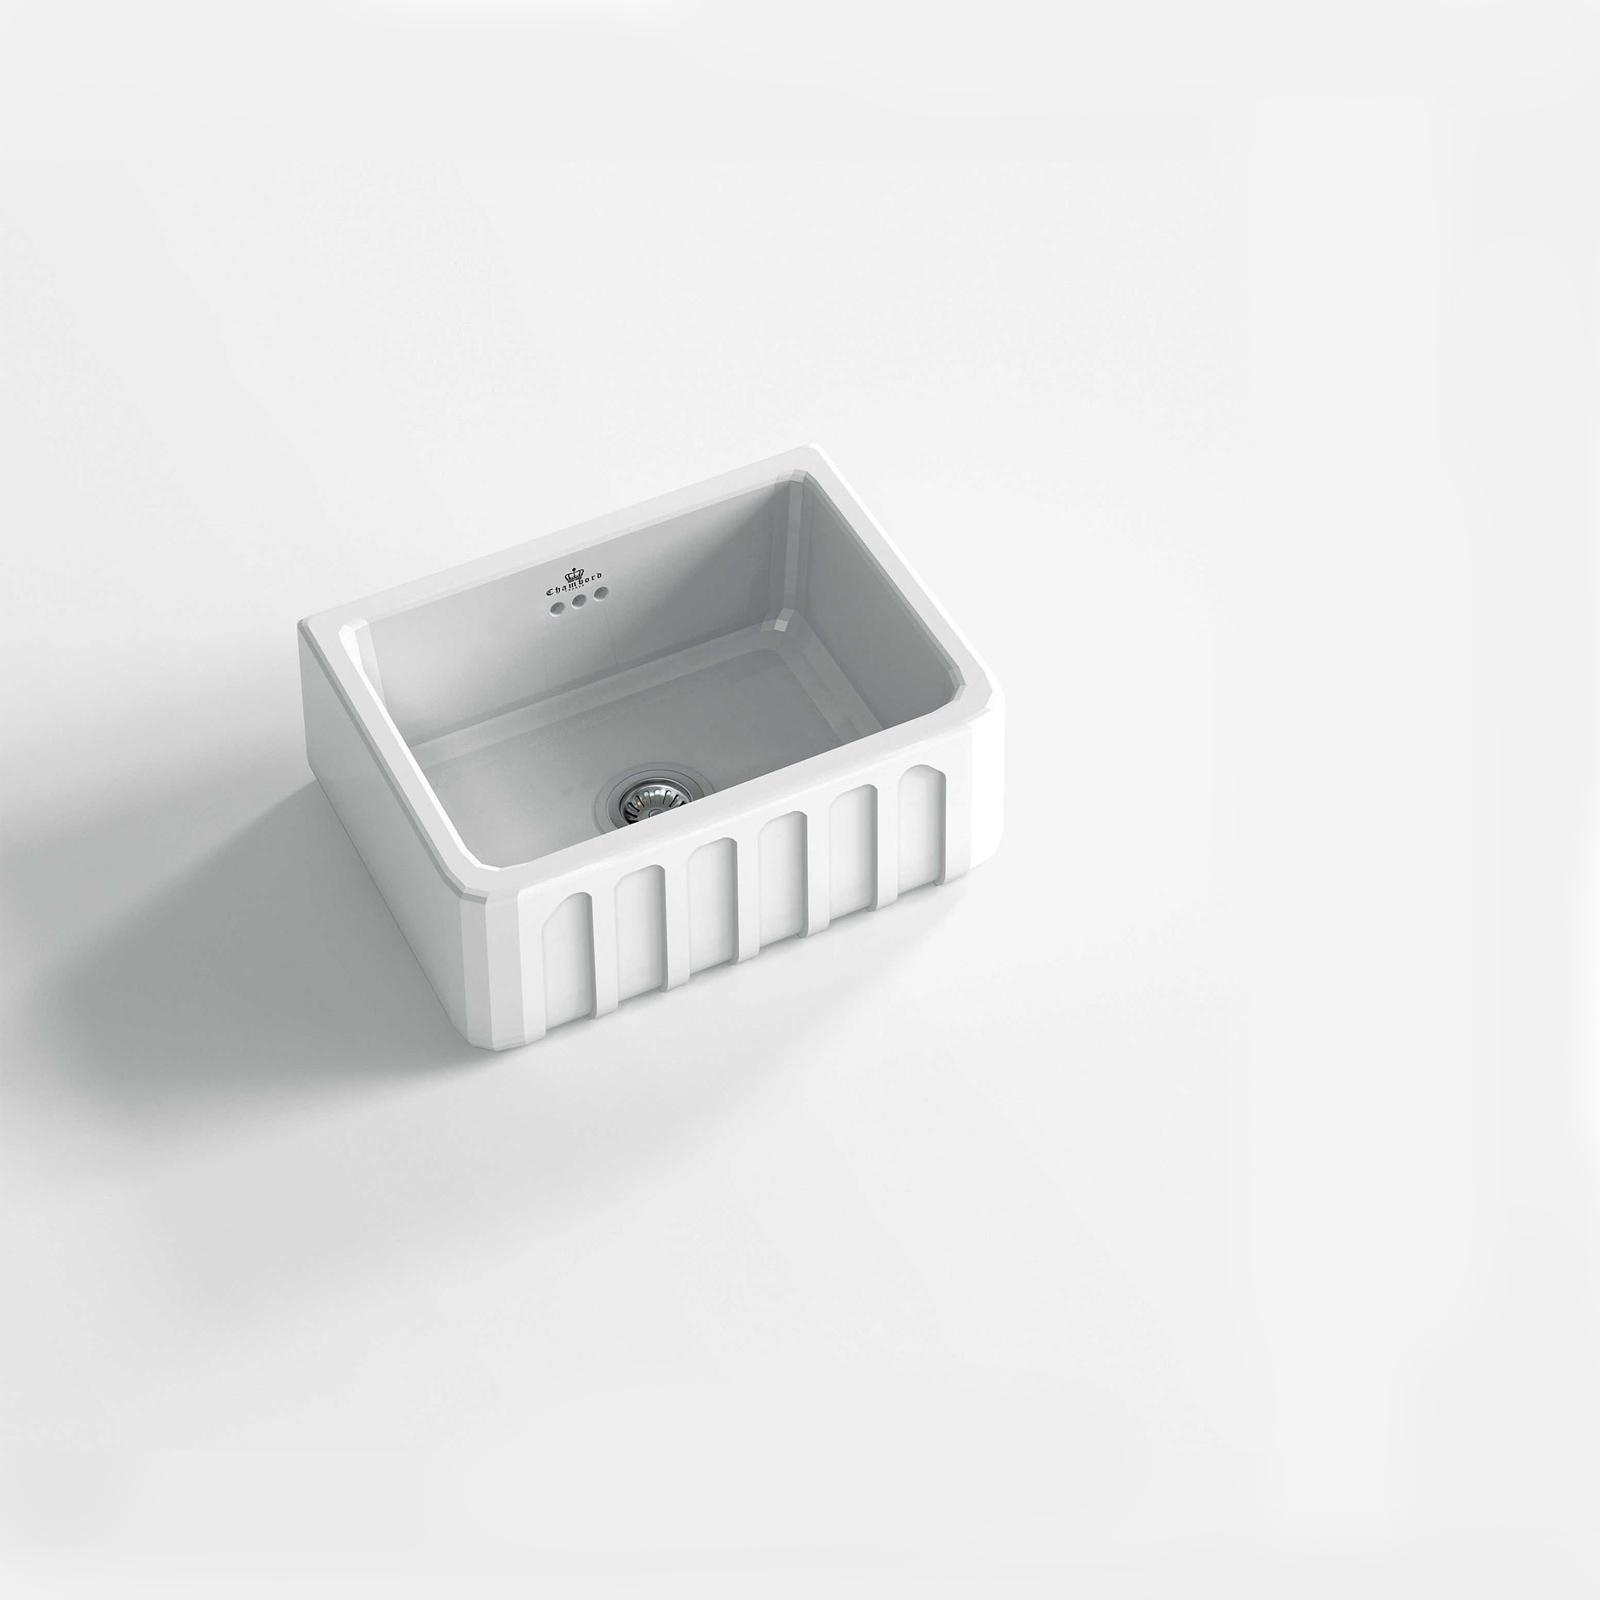 High-quality sink Louis I - single bowl, ceramic